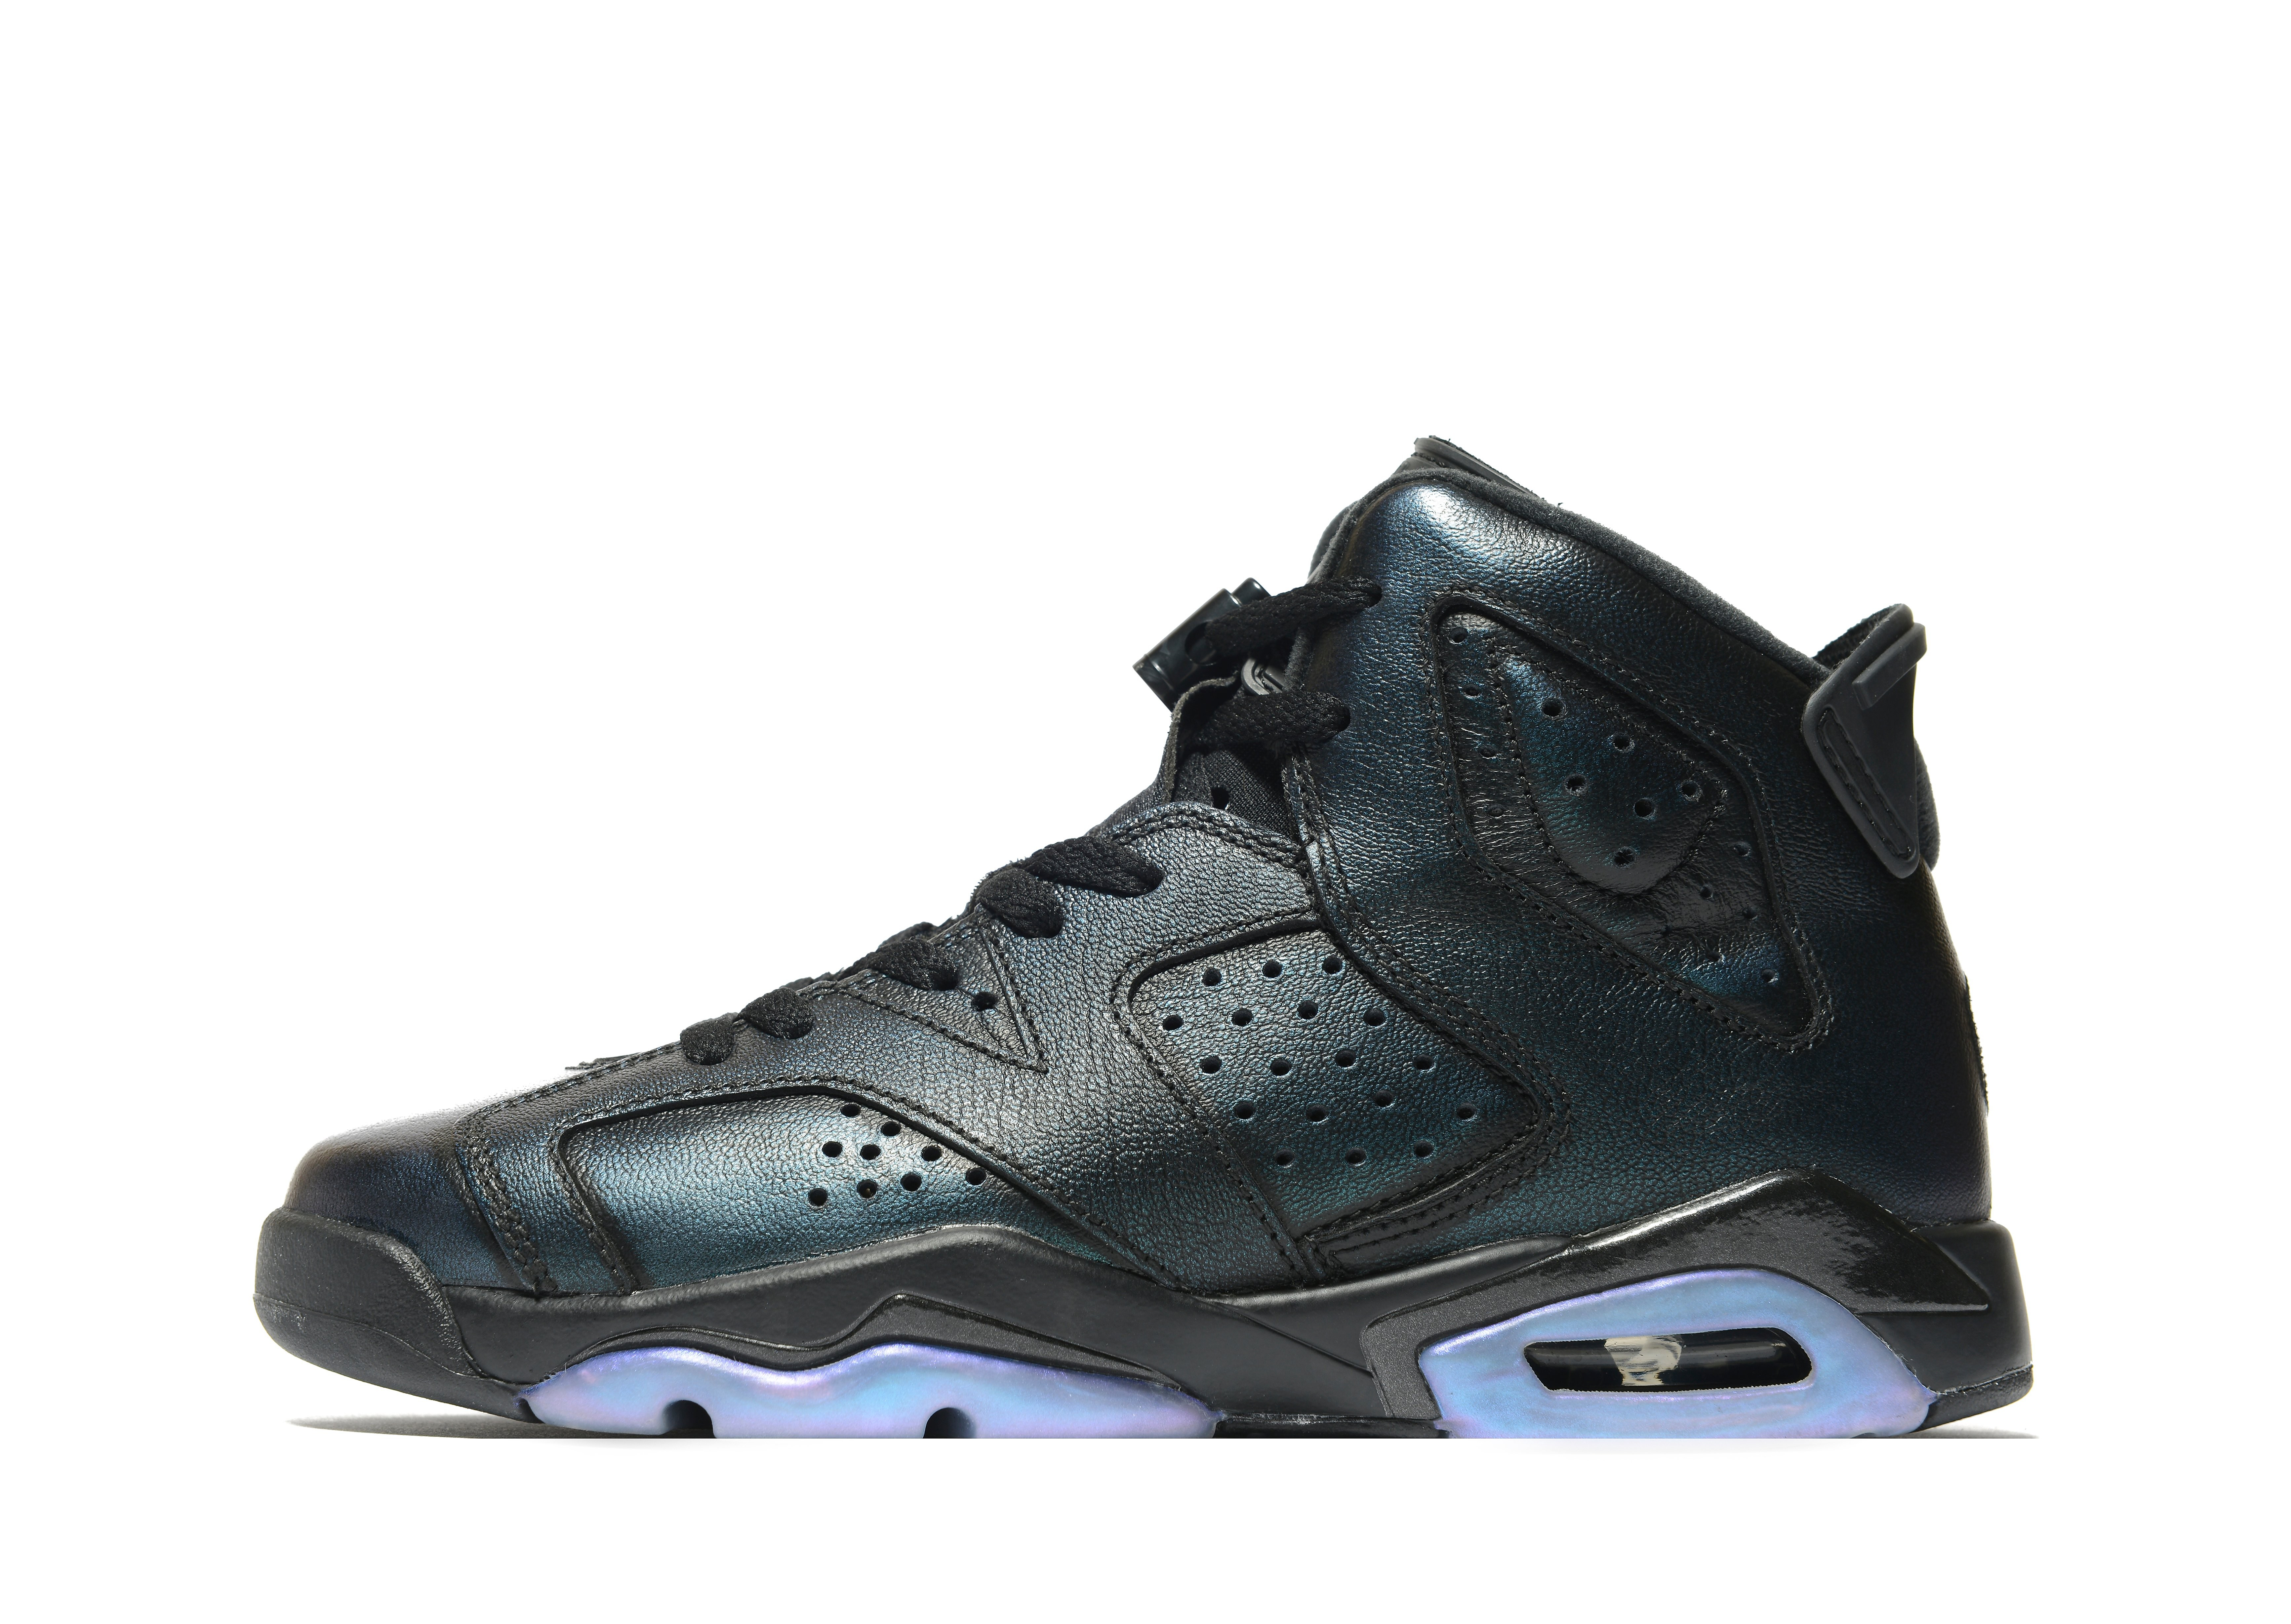 Jordan Air Retro 6 'Gotta Shine' Junior